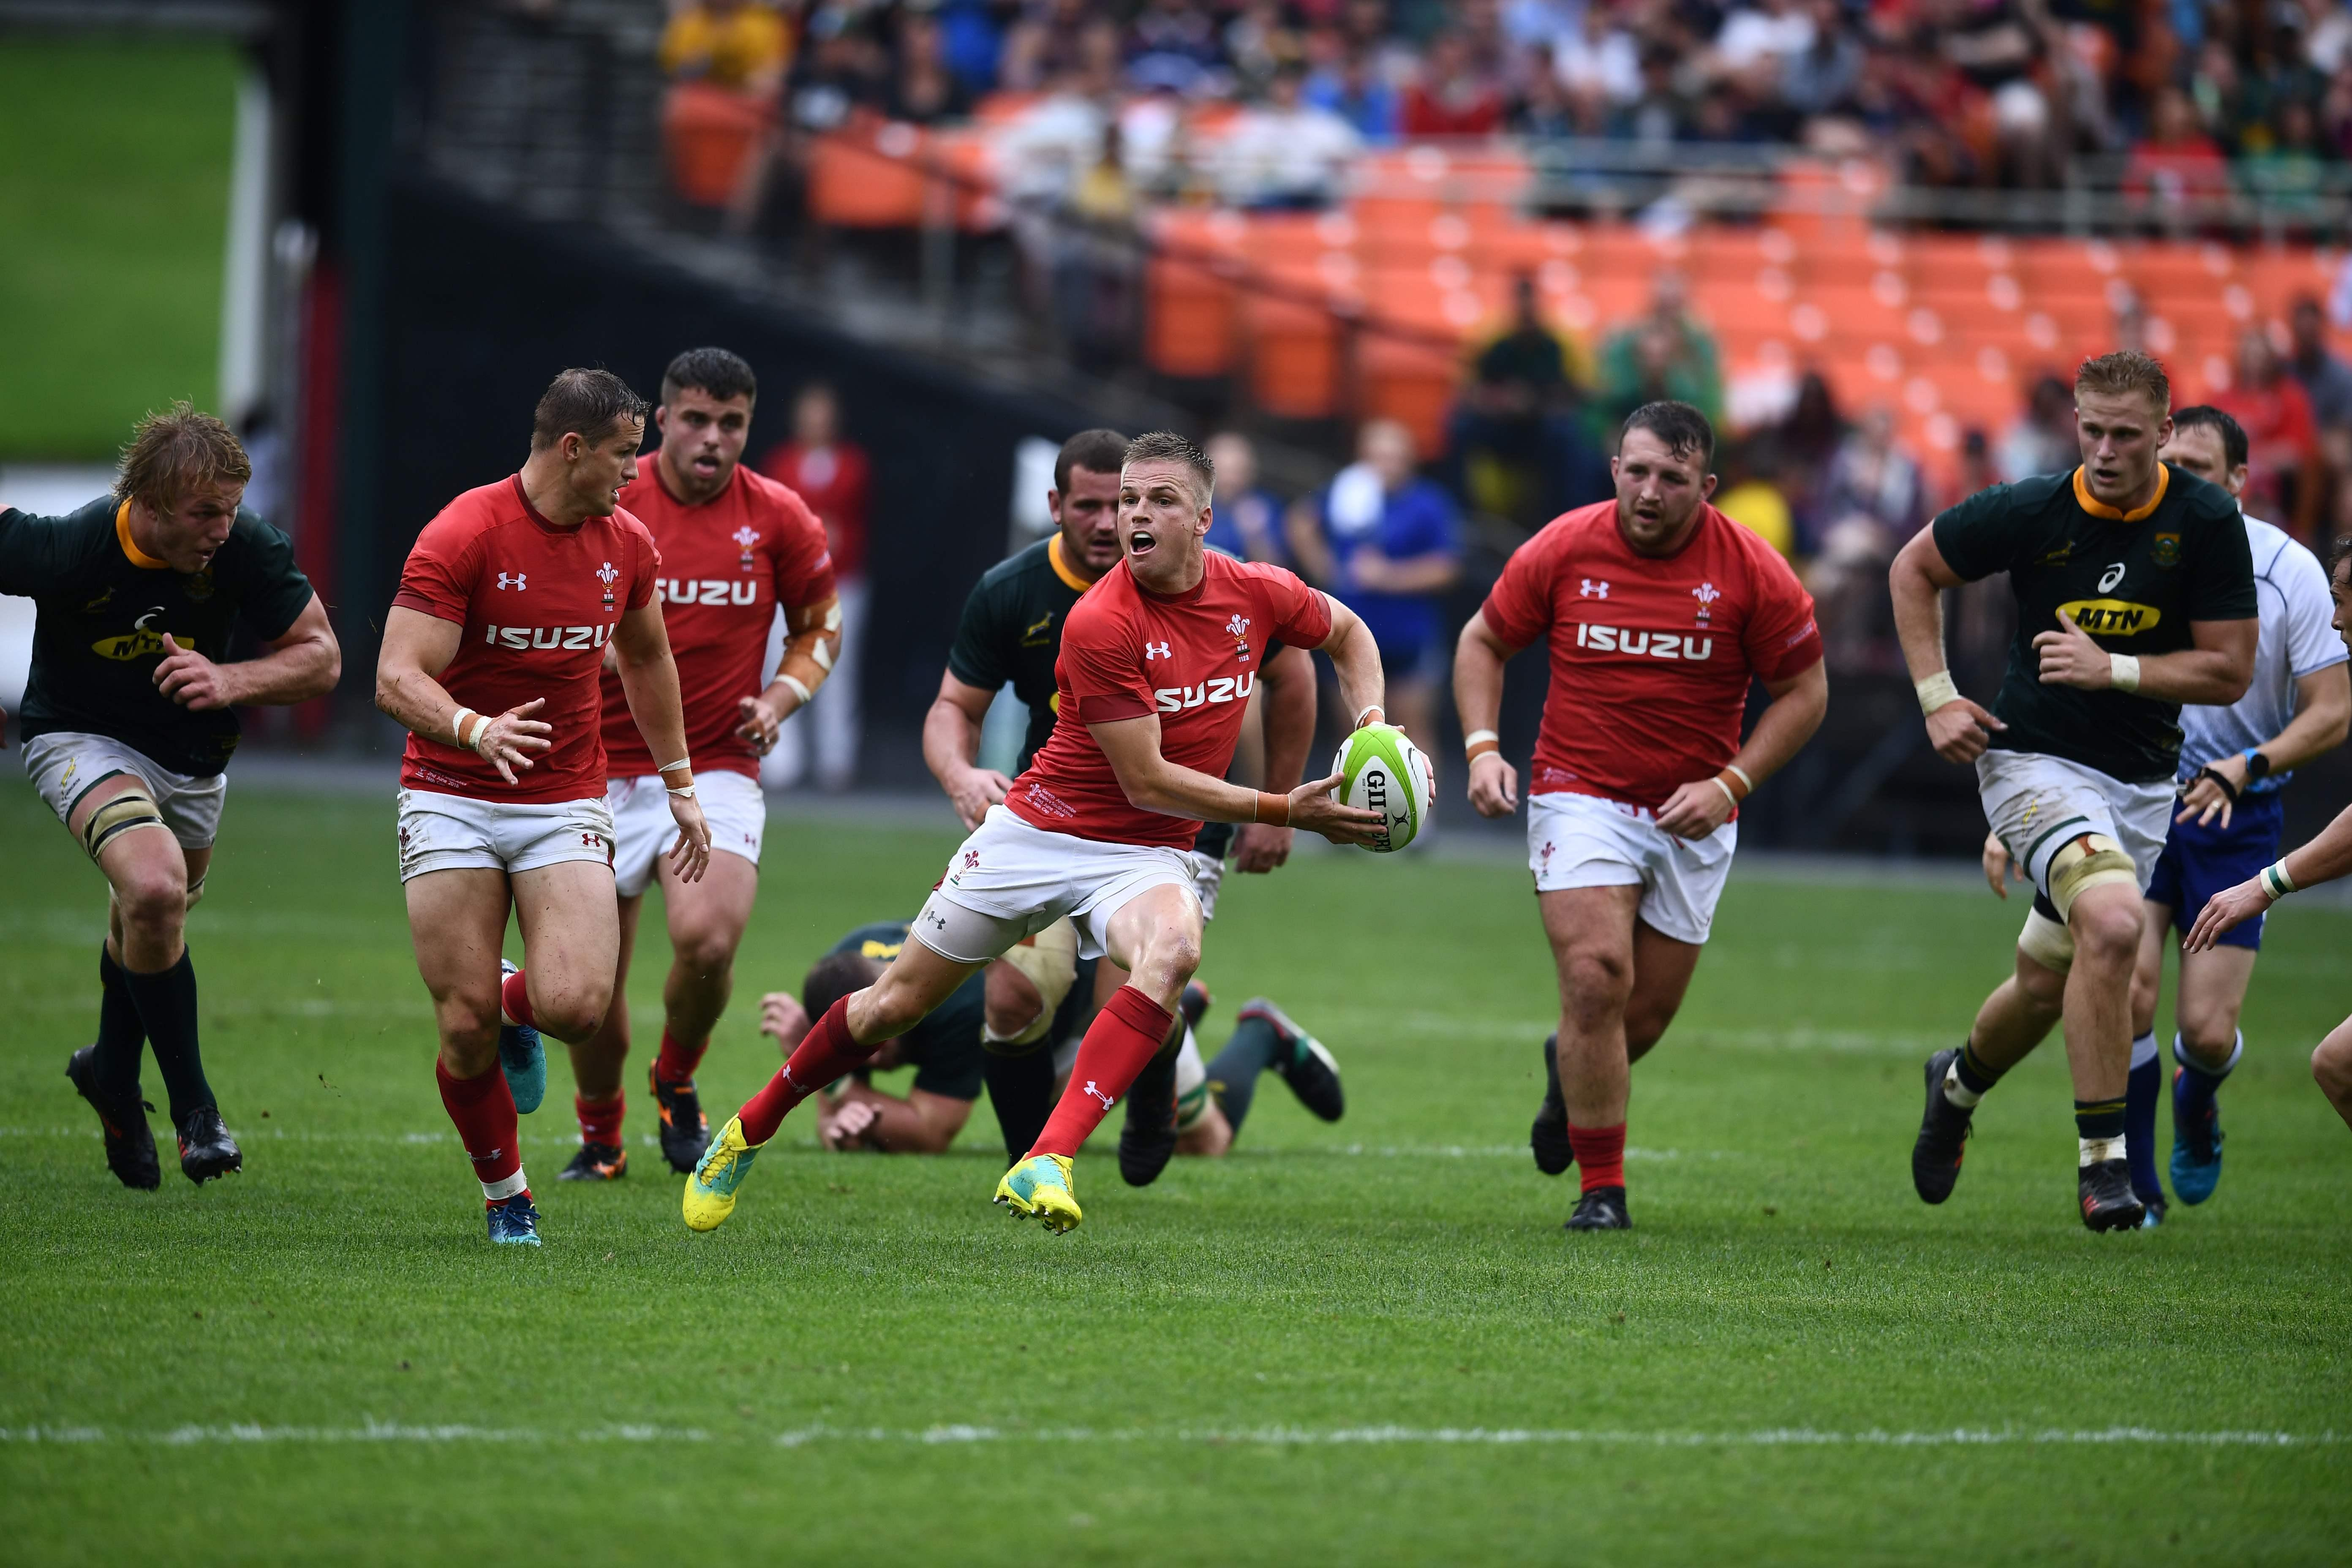 Anscombe runs with the ball during the build-up to Wales' first try